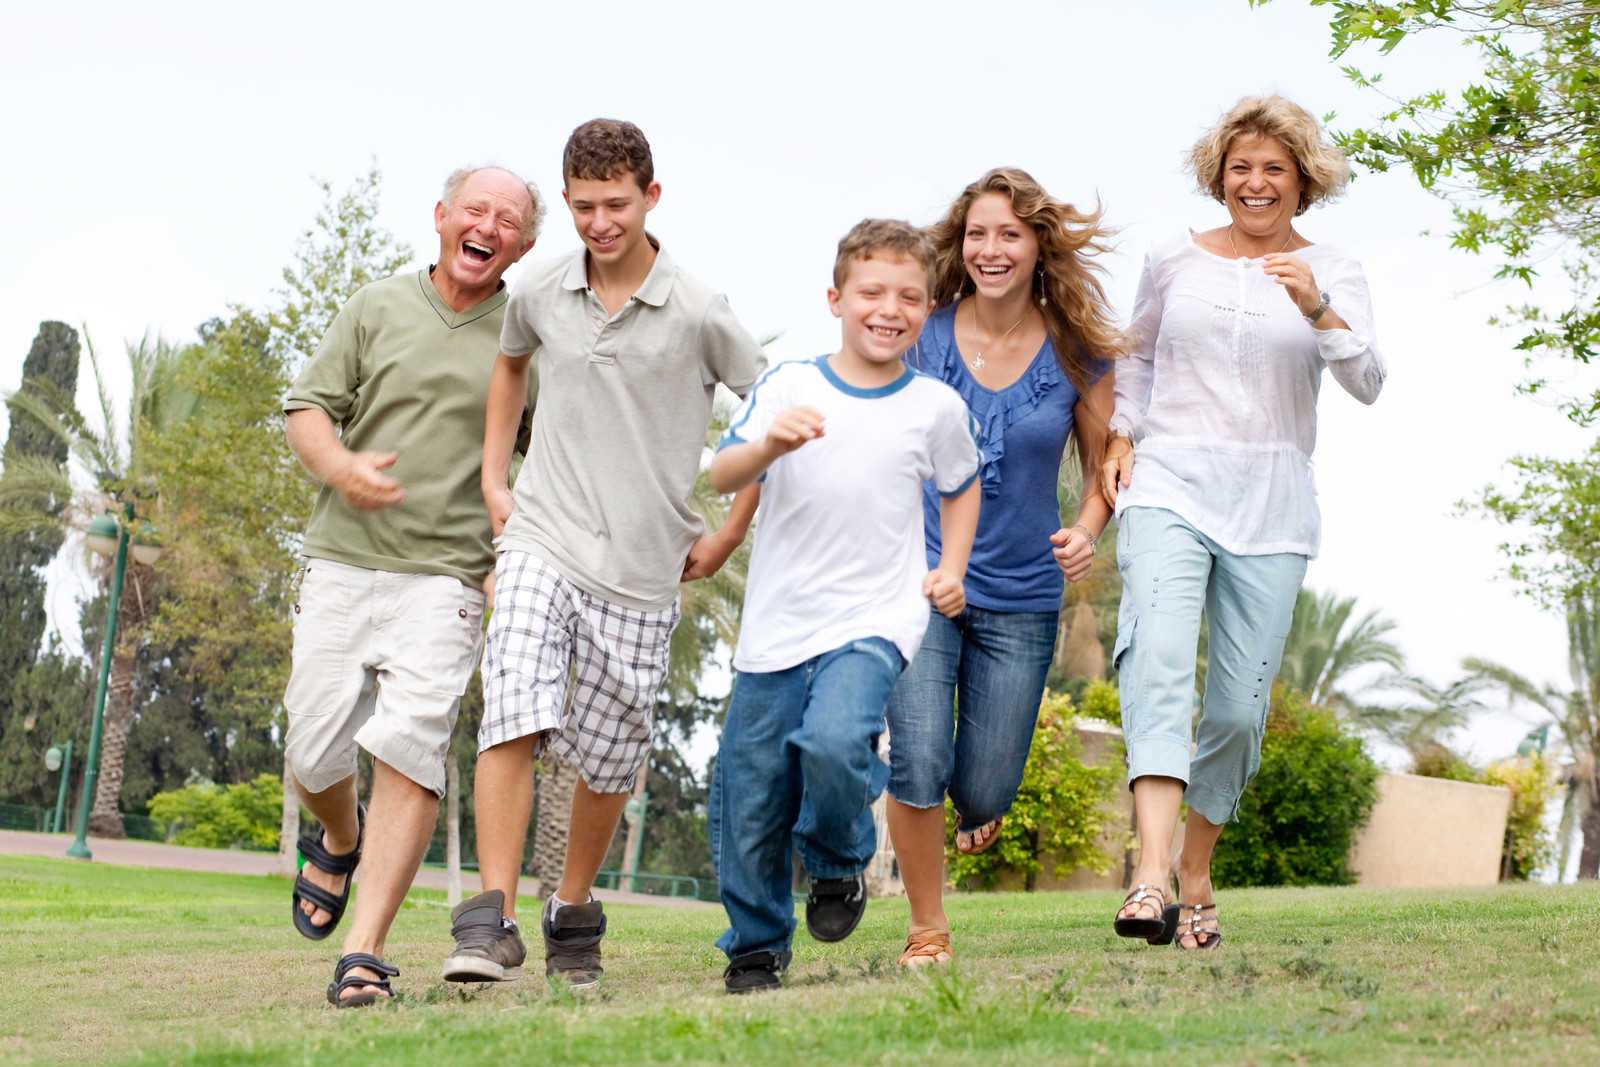 A Tulsa family jogs together